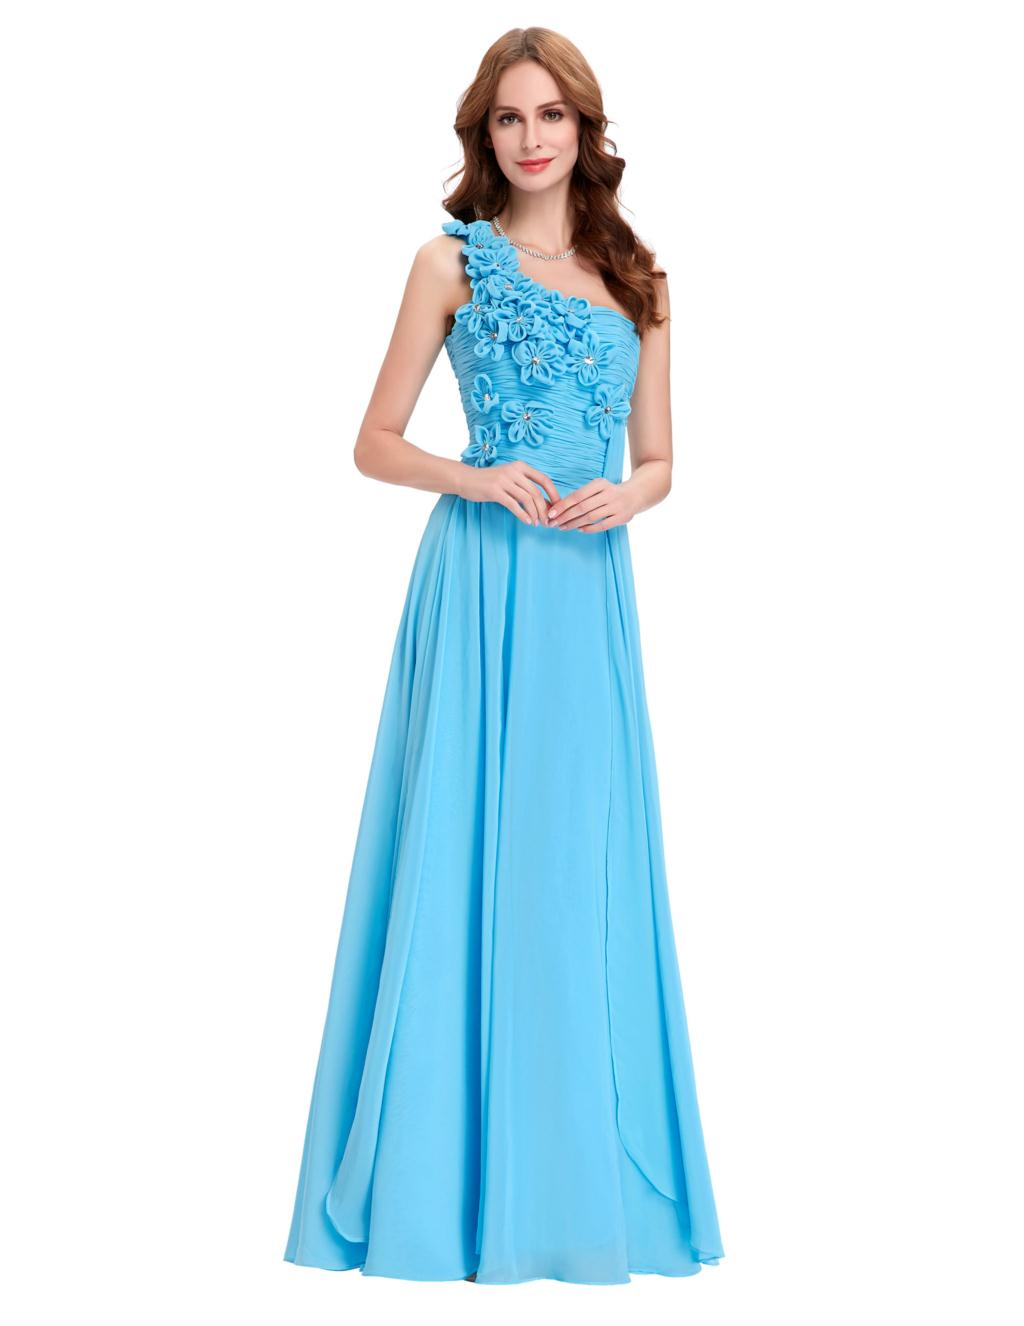 Light bridesmaid dresses discount wedding dresses for Discount wedding dresses orlando